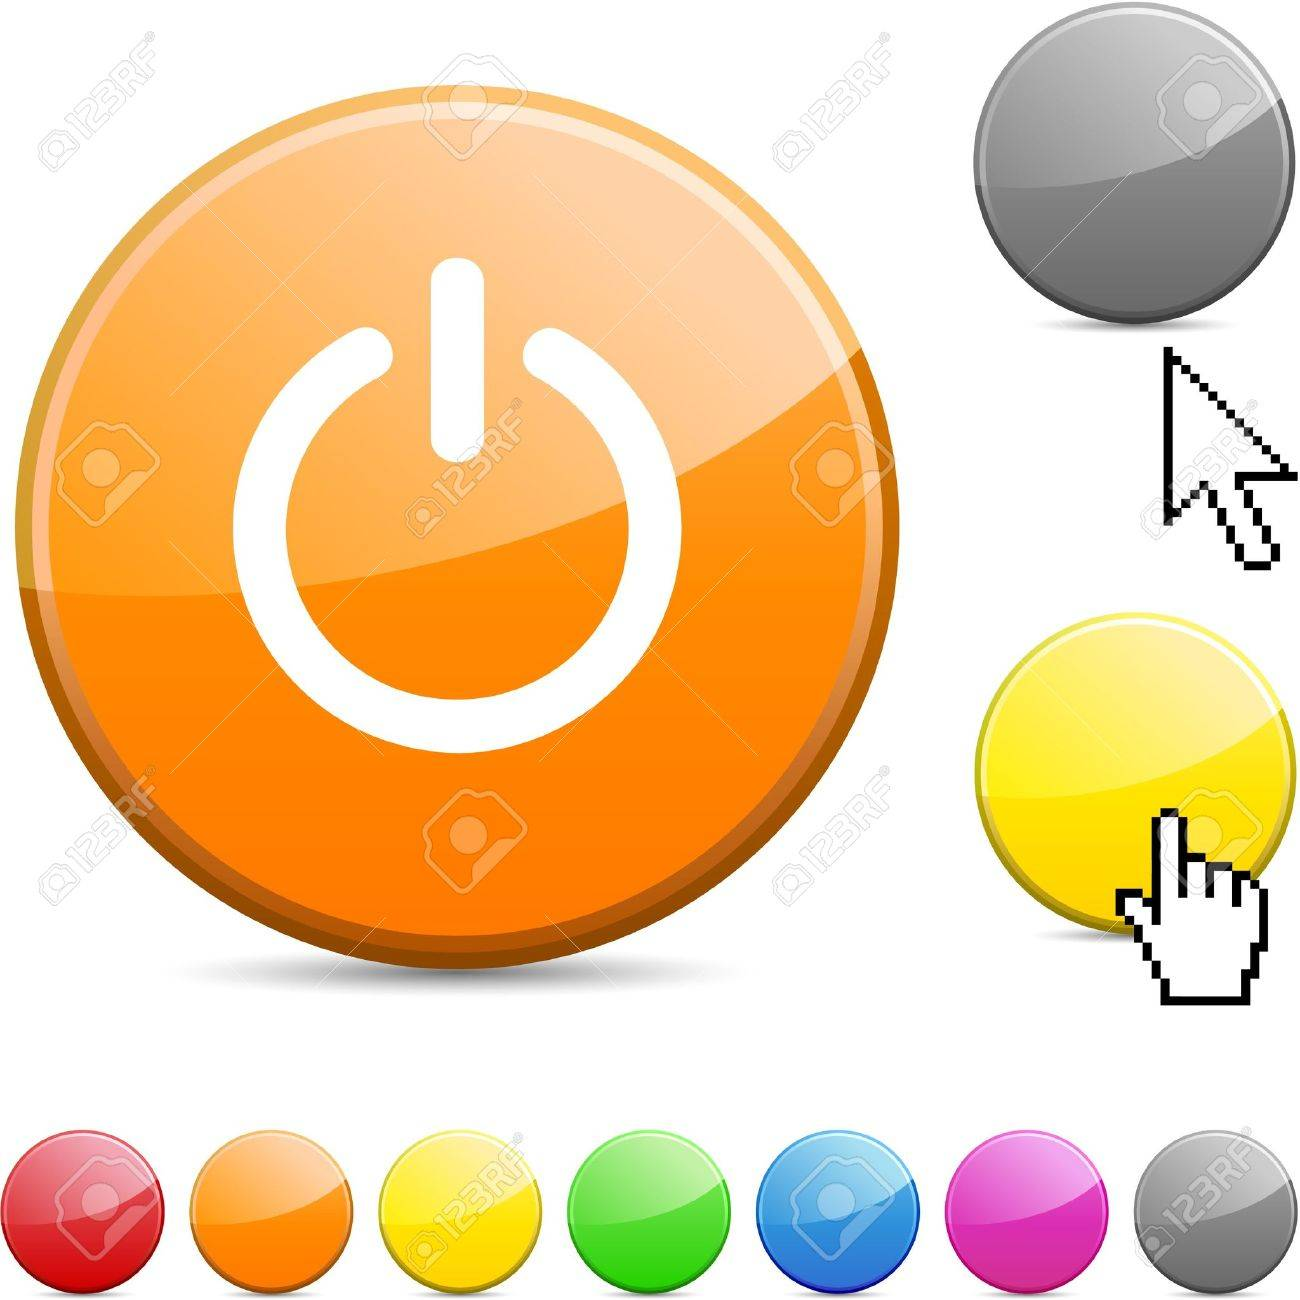 Switch glossy vibrant round icon. Stock Vector - 7156258